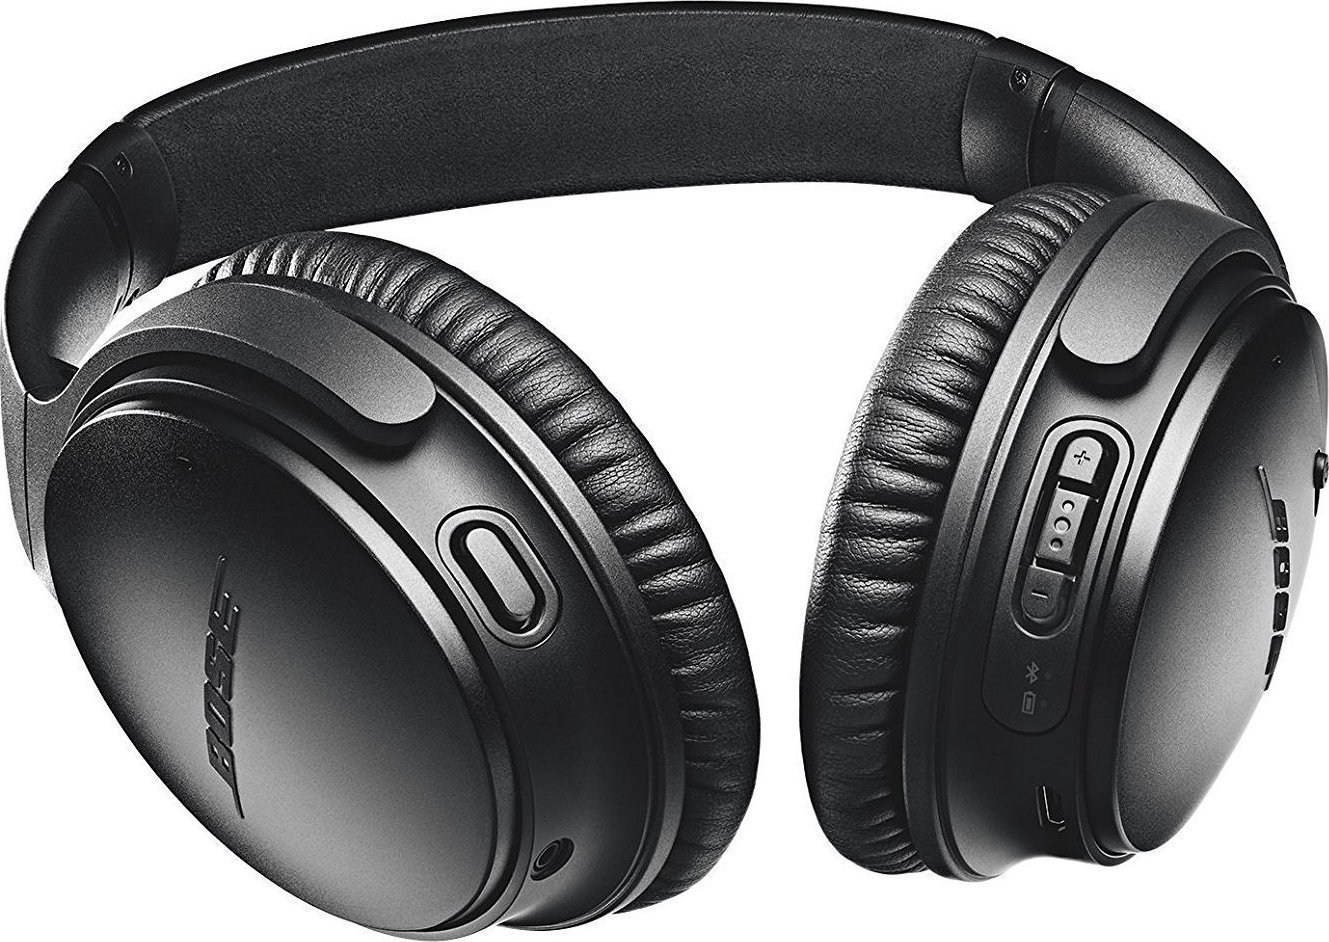 Bose QuietComfort 35 II Wireless Headphones Black Πληρωμή έως 12 δόσεις